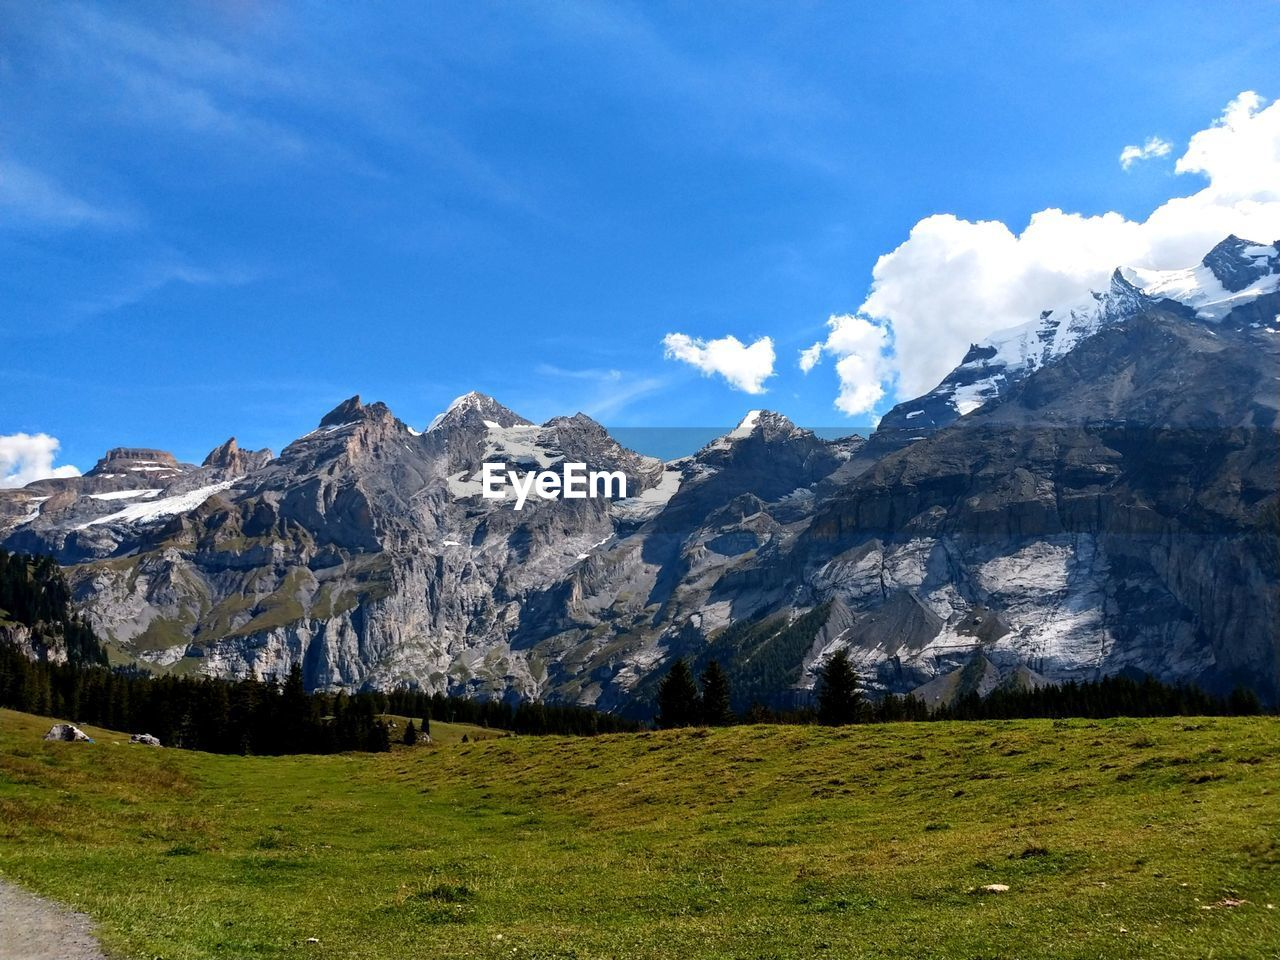 mountain, sky, landscape, grass, environment, cloud - sky, nature, beauty in nature, tranquil scene, land, tranquility, scenics - nature, plant, no people, snow, scenery, day, field, non-urban scene, green color, mountain peak, range, mountain range, snowcapped mountain